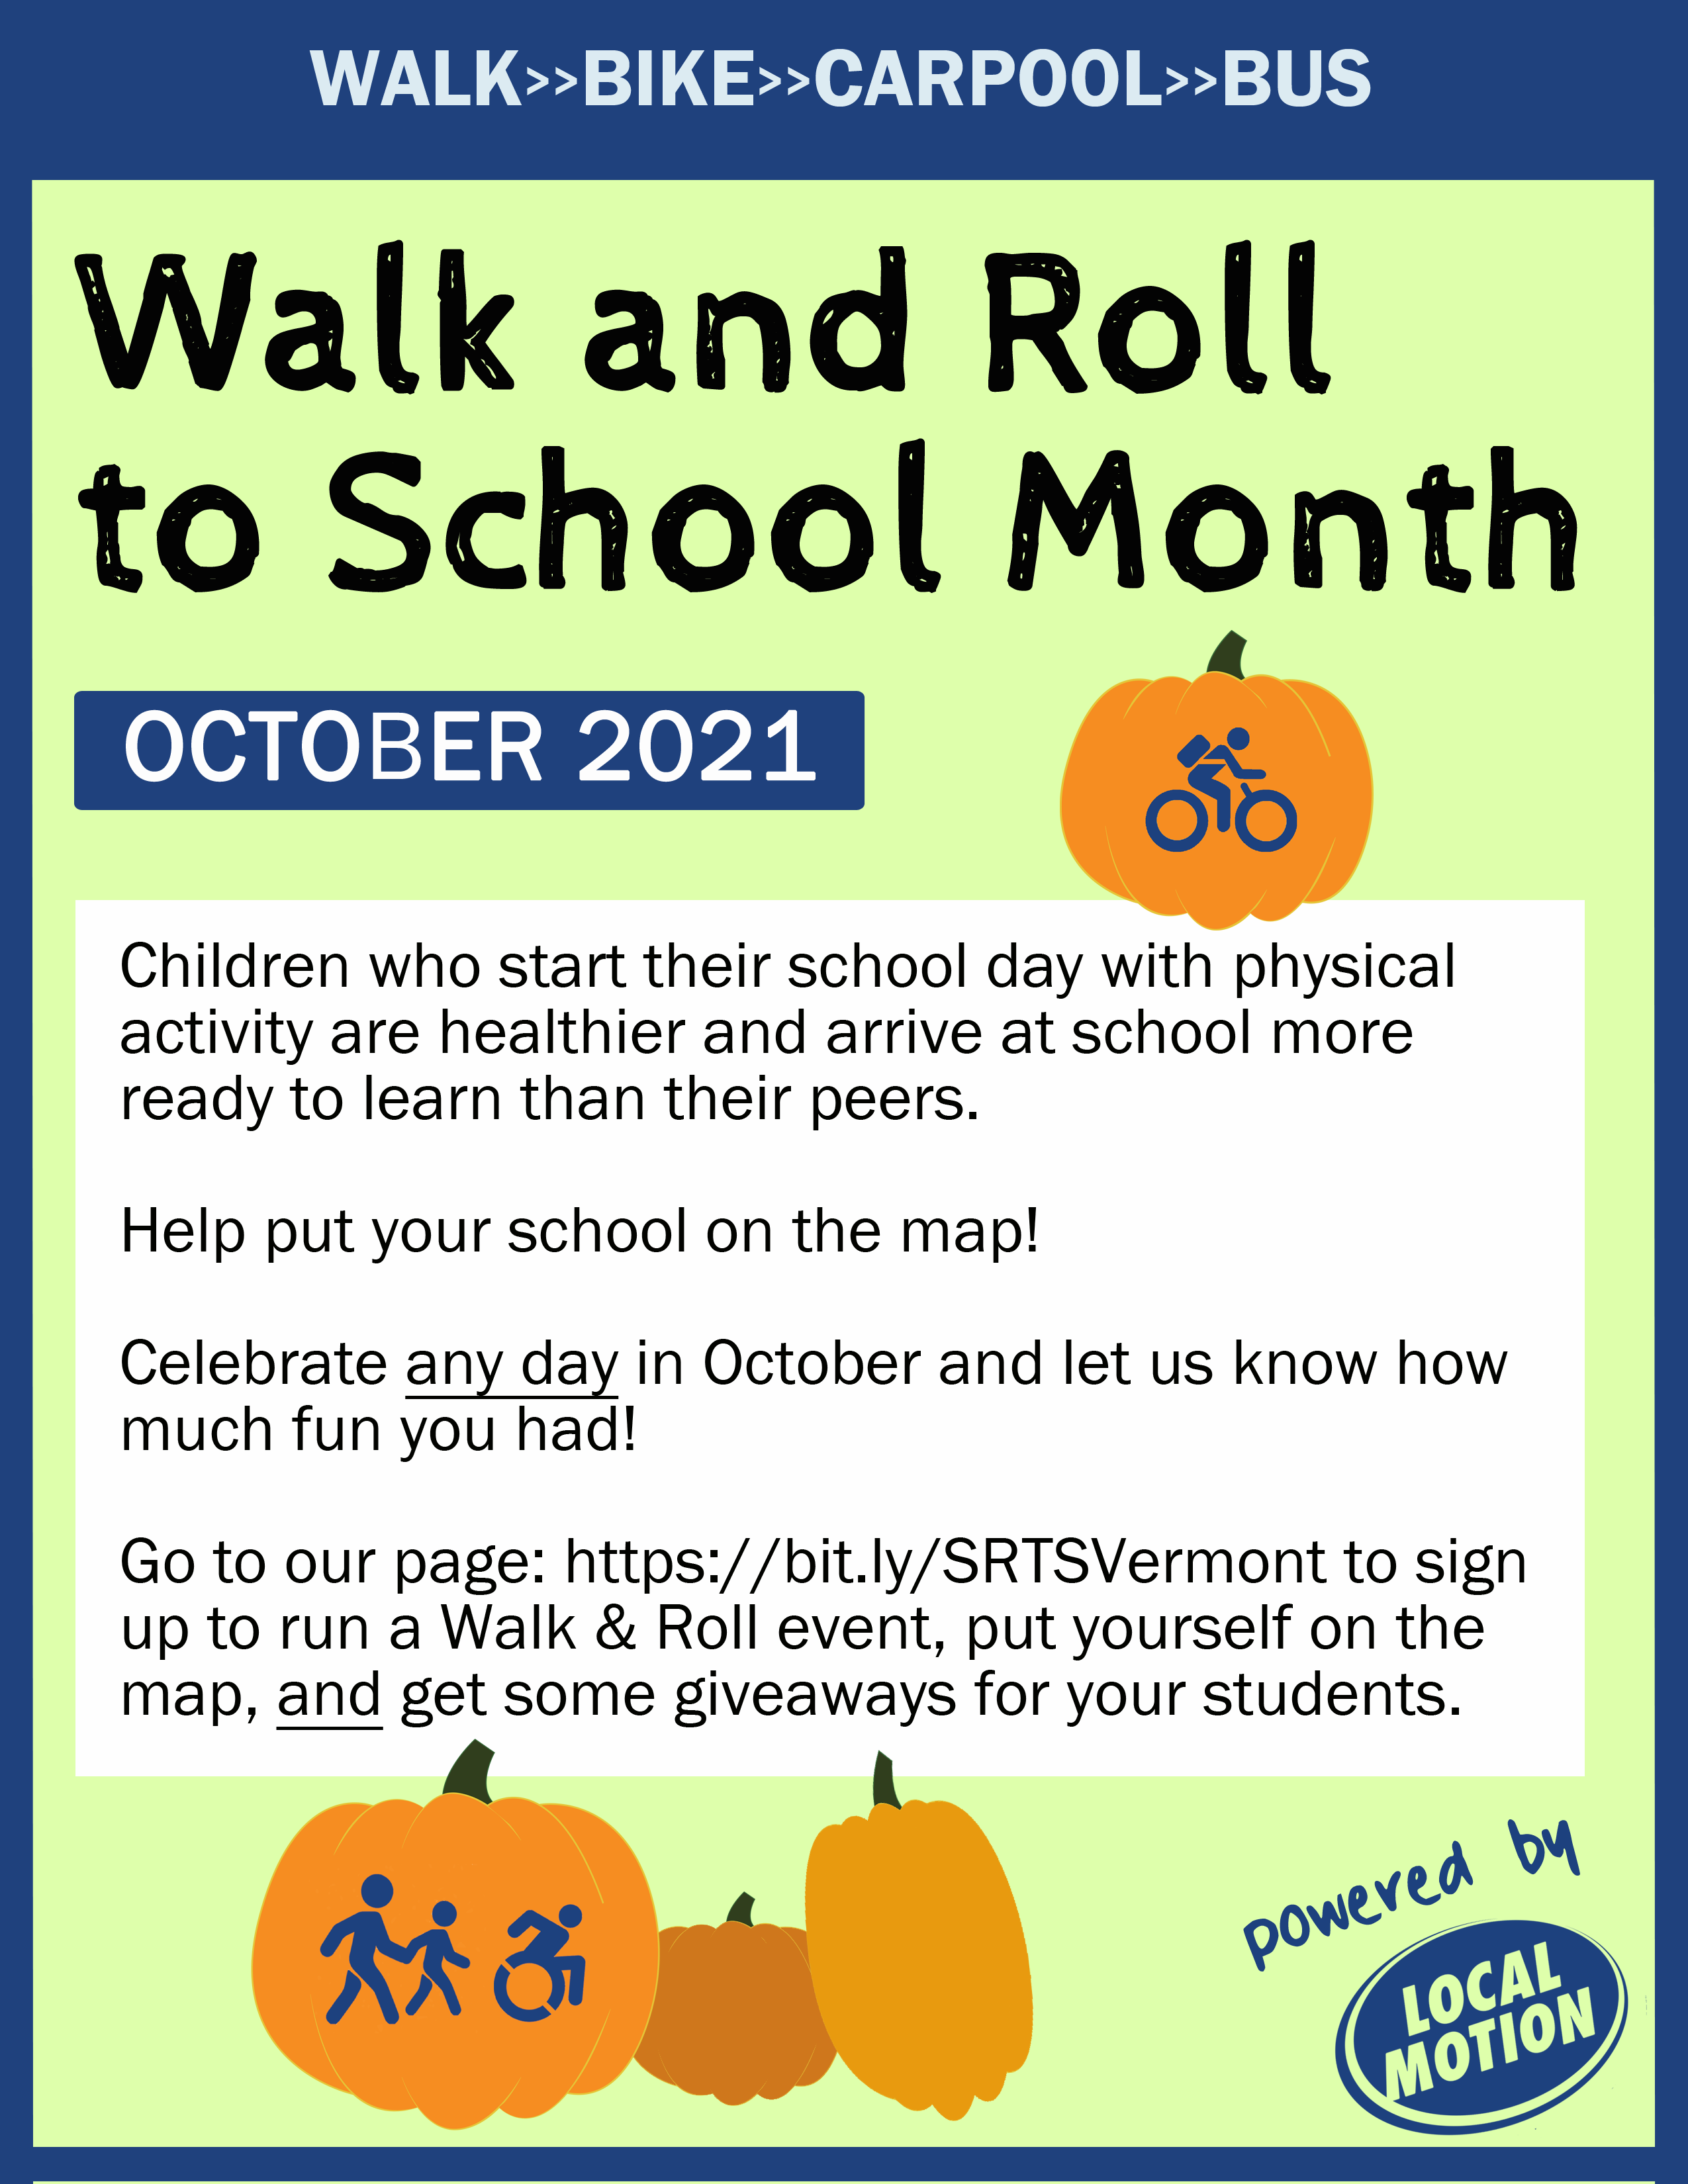 Walk and Roll to school month poster-- Walking to School is a great way to help students start the day on the right foot.  Celebrate Walk & Roll to school month during October!